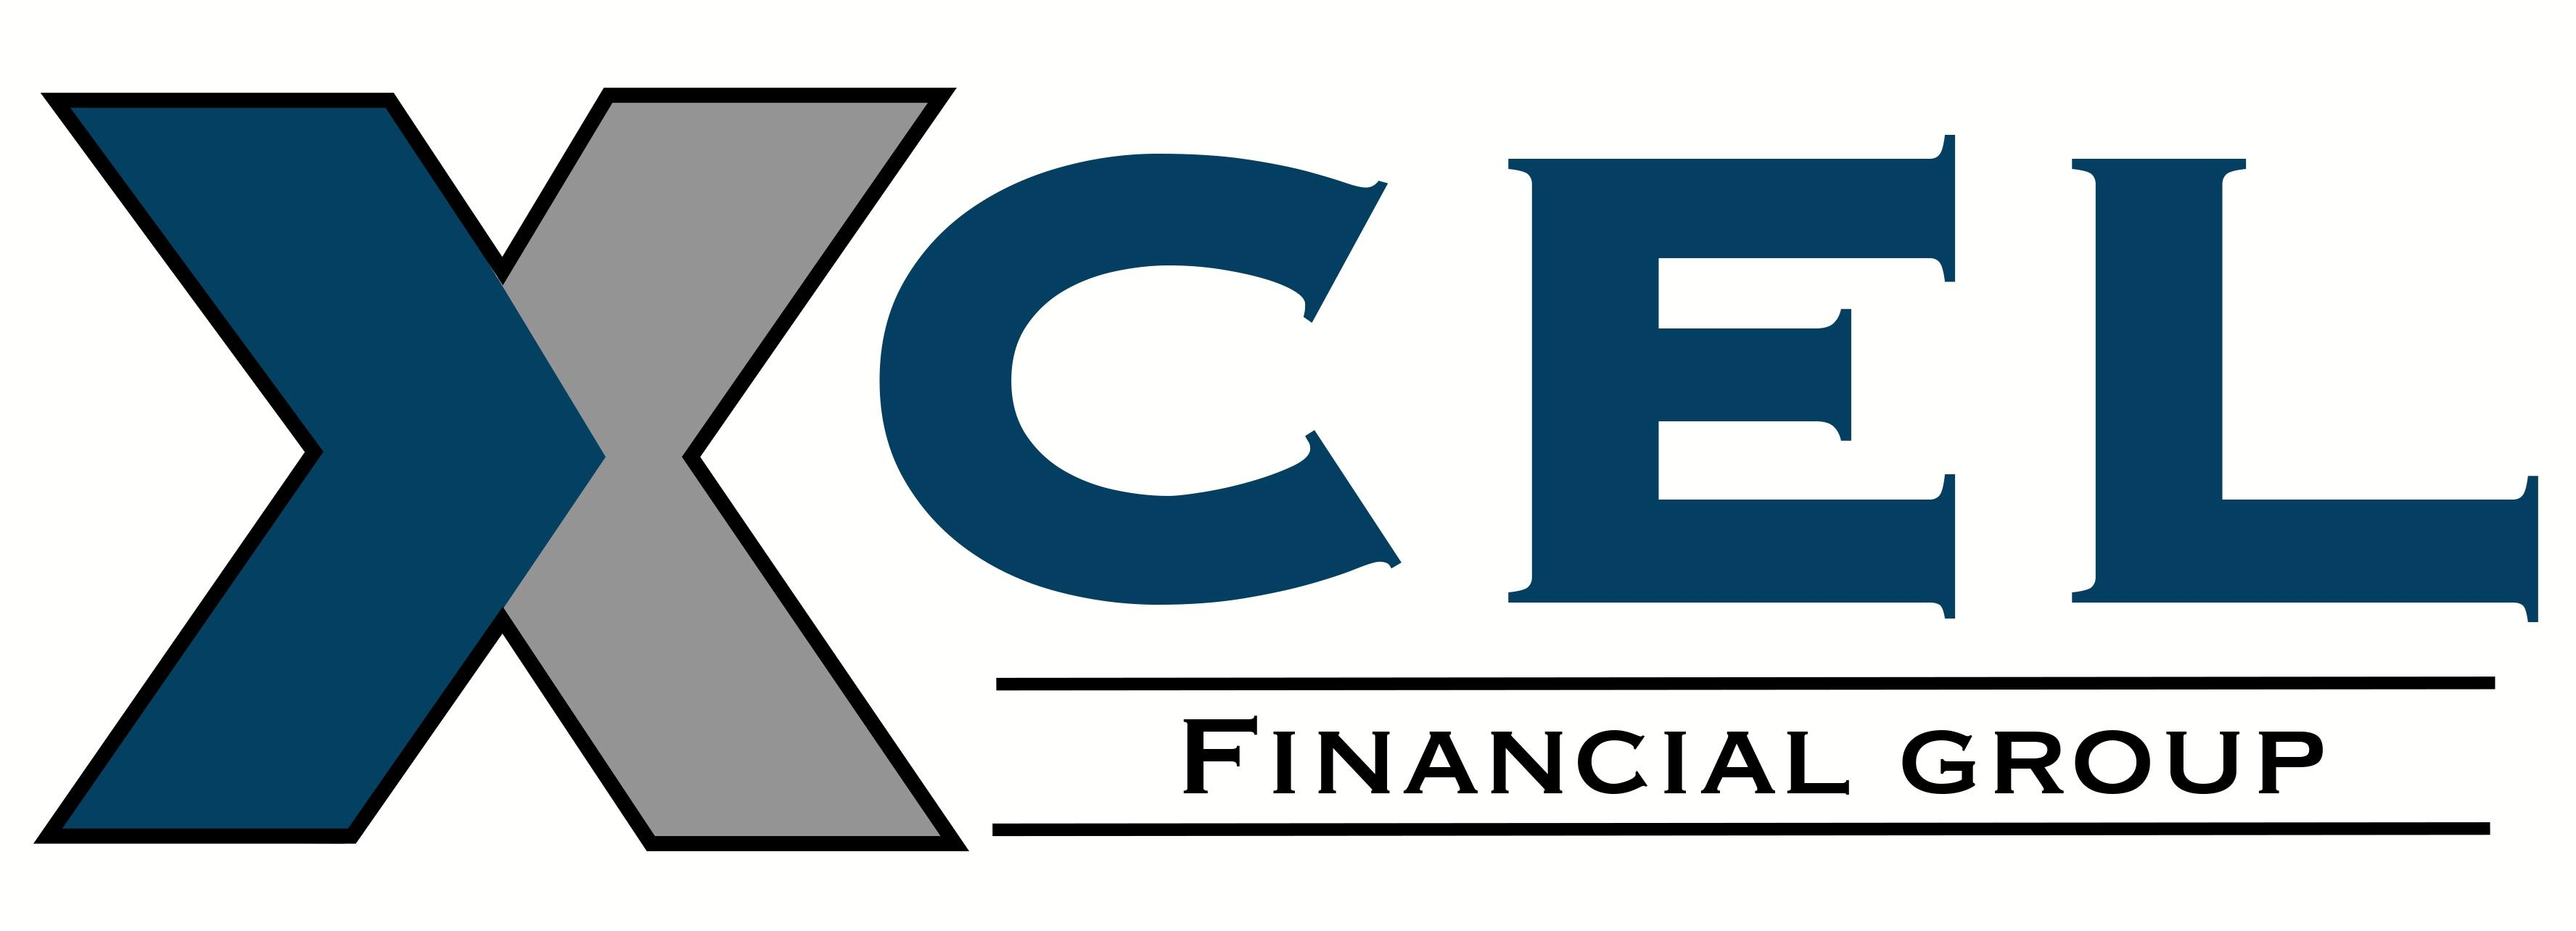 Xcel Financial Group